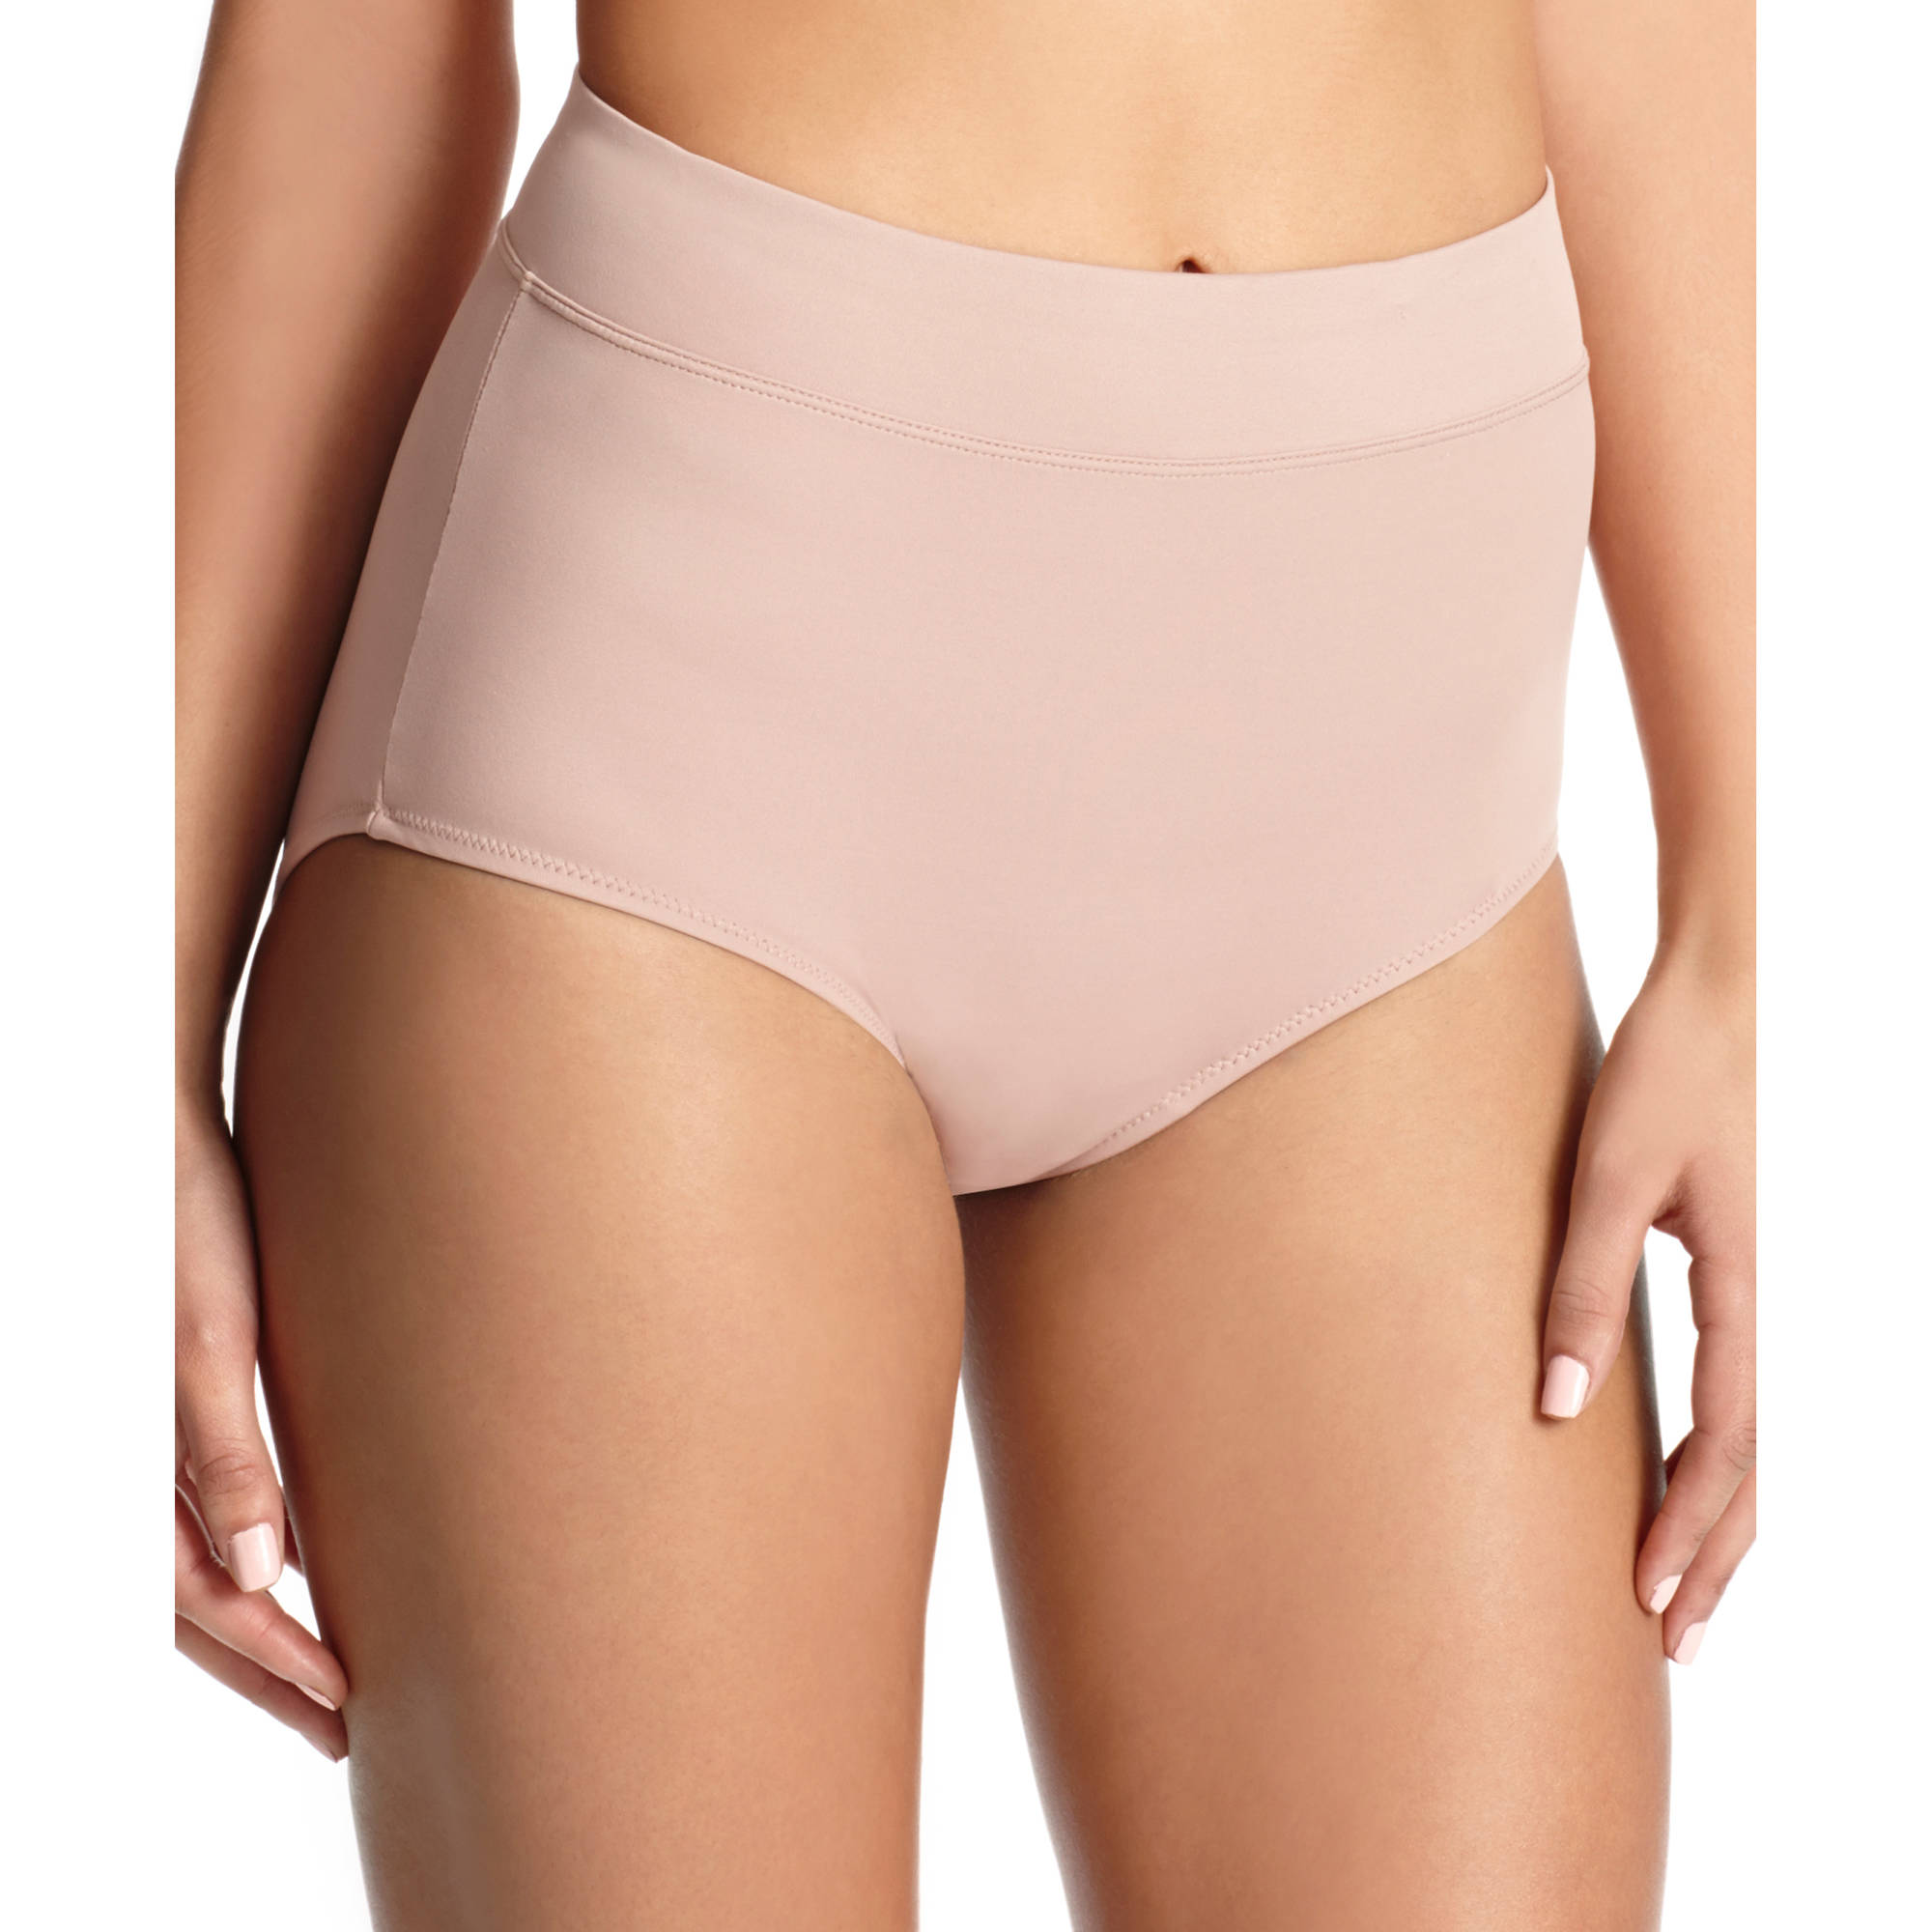 Blissful Benefits by Warner's No Muffin Top Brief Panties